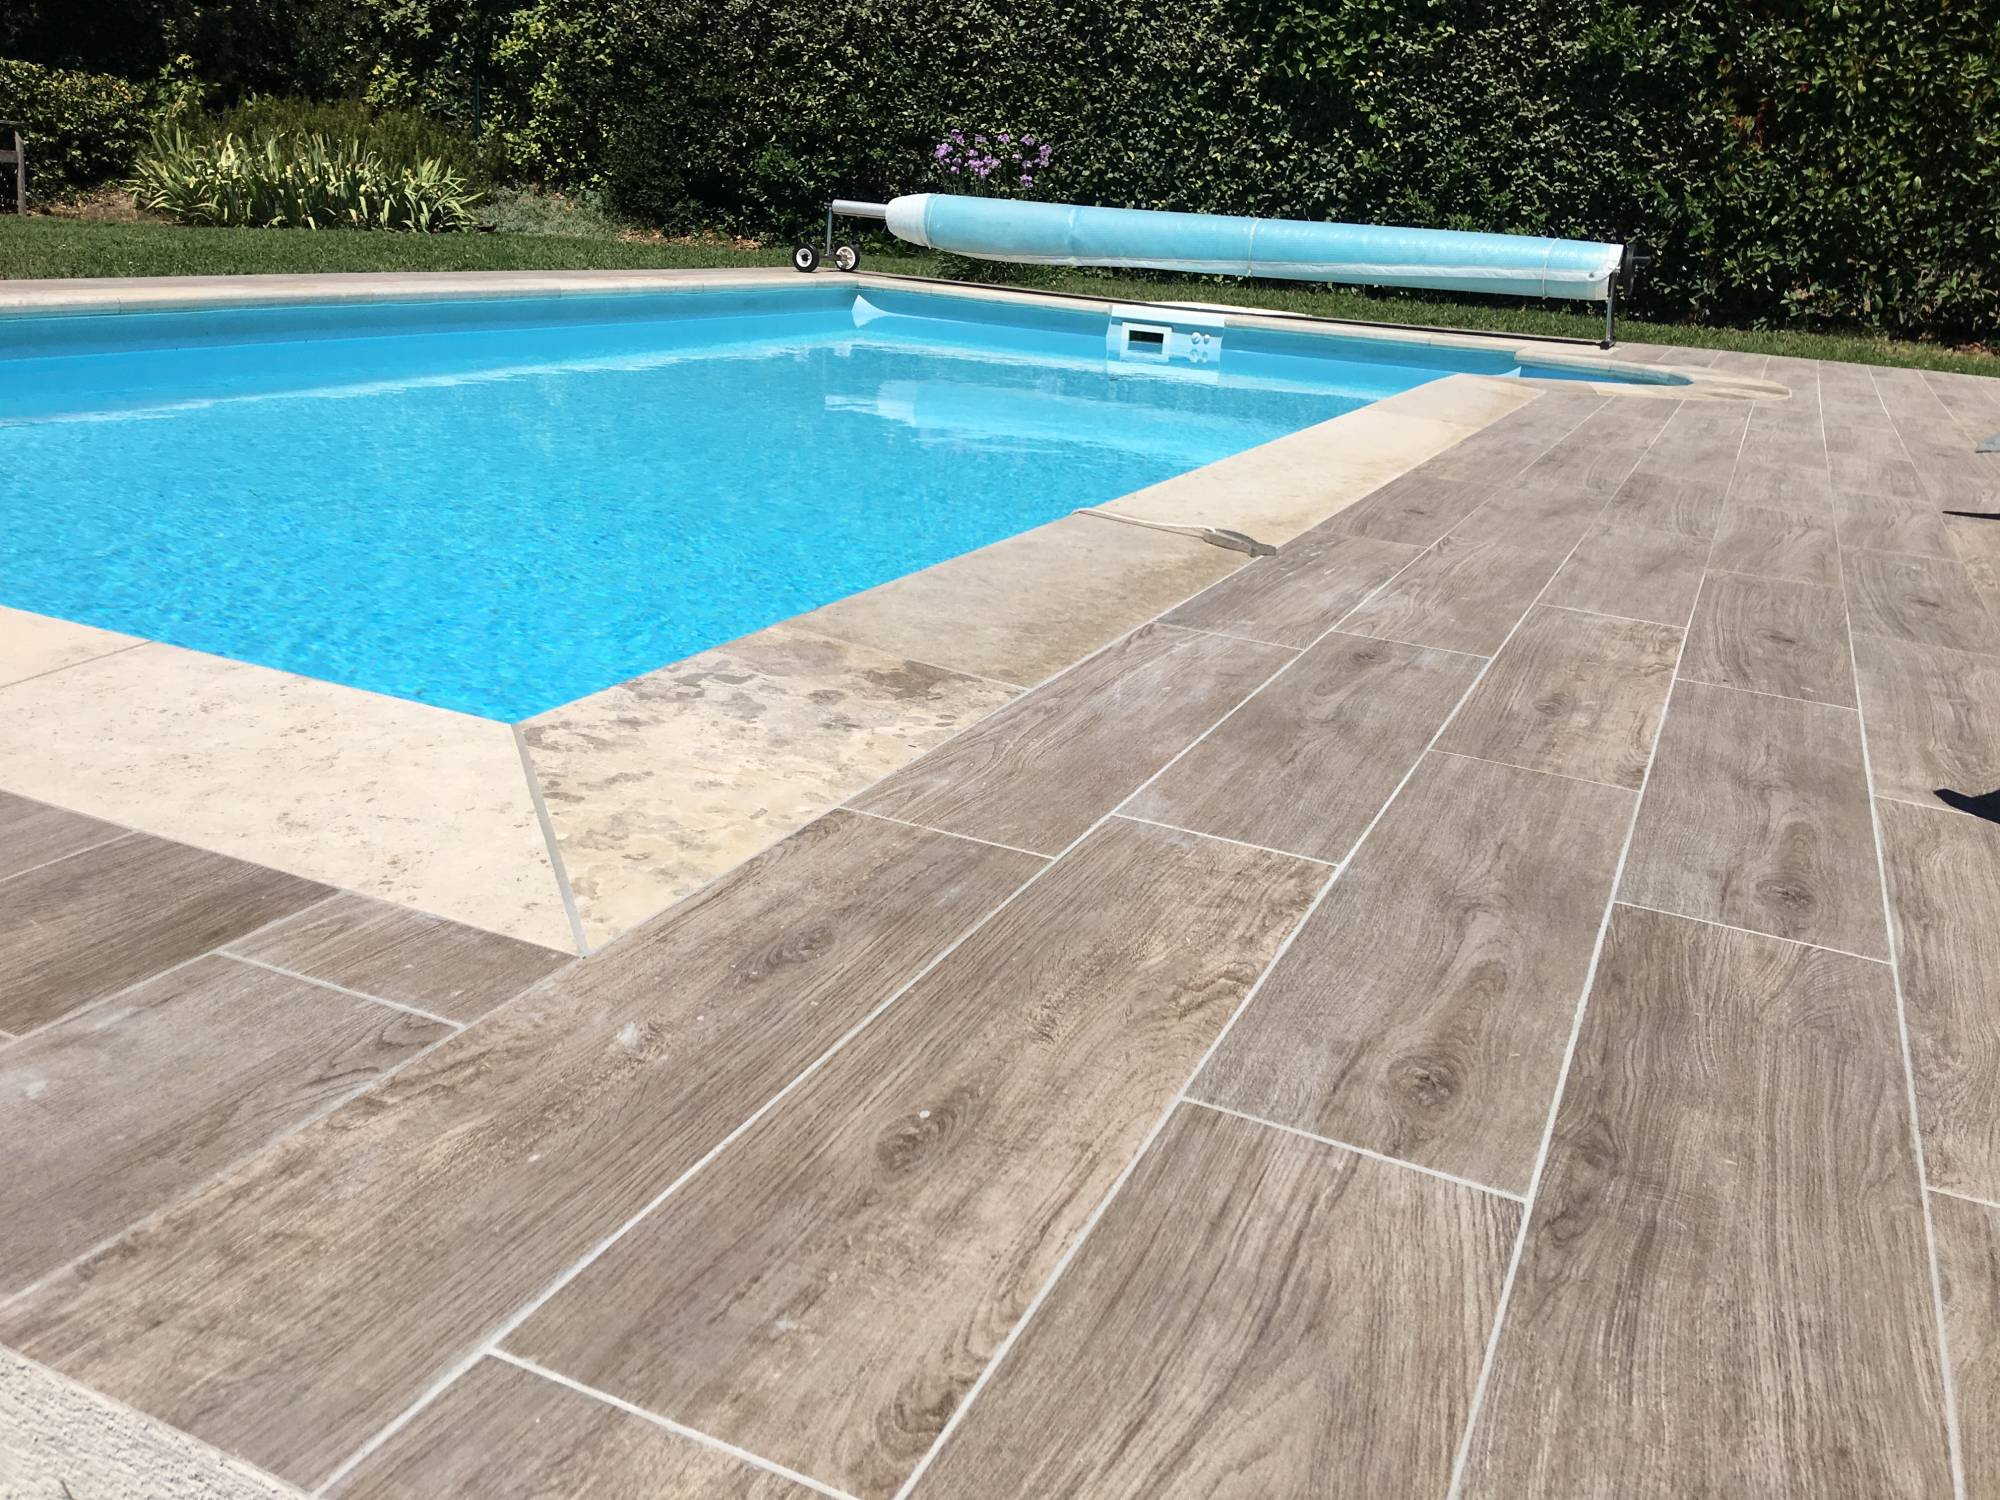 Carrelage plage piscine imitation bois for Piscine personnalisee